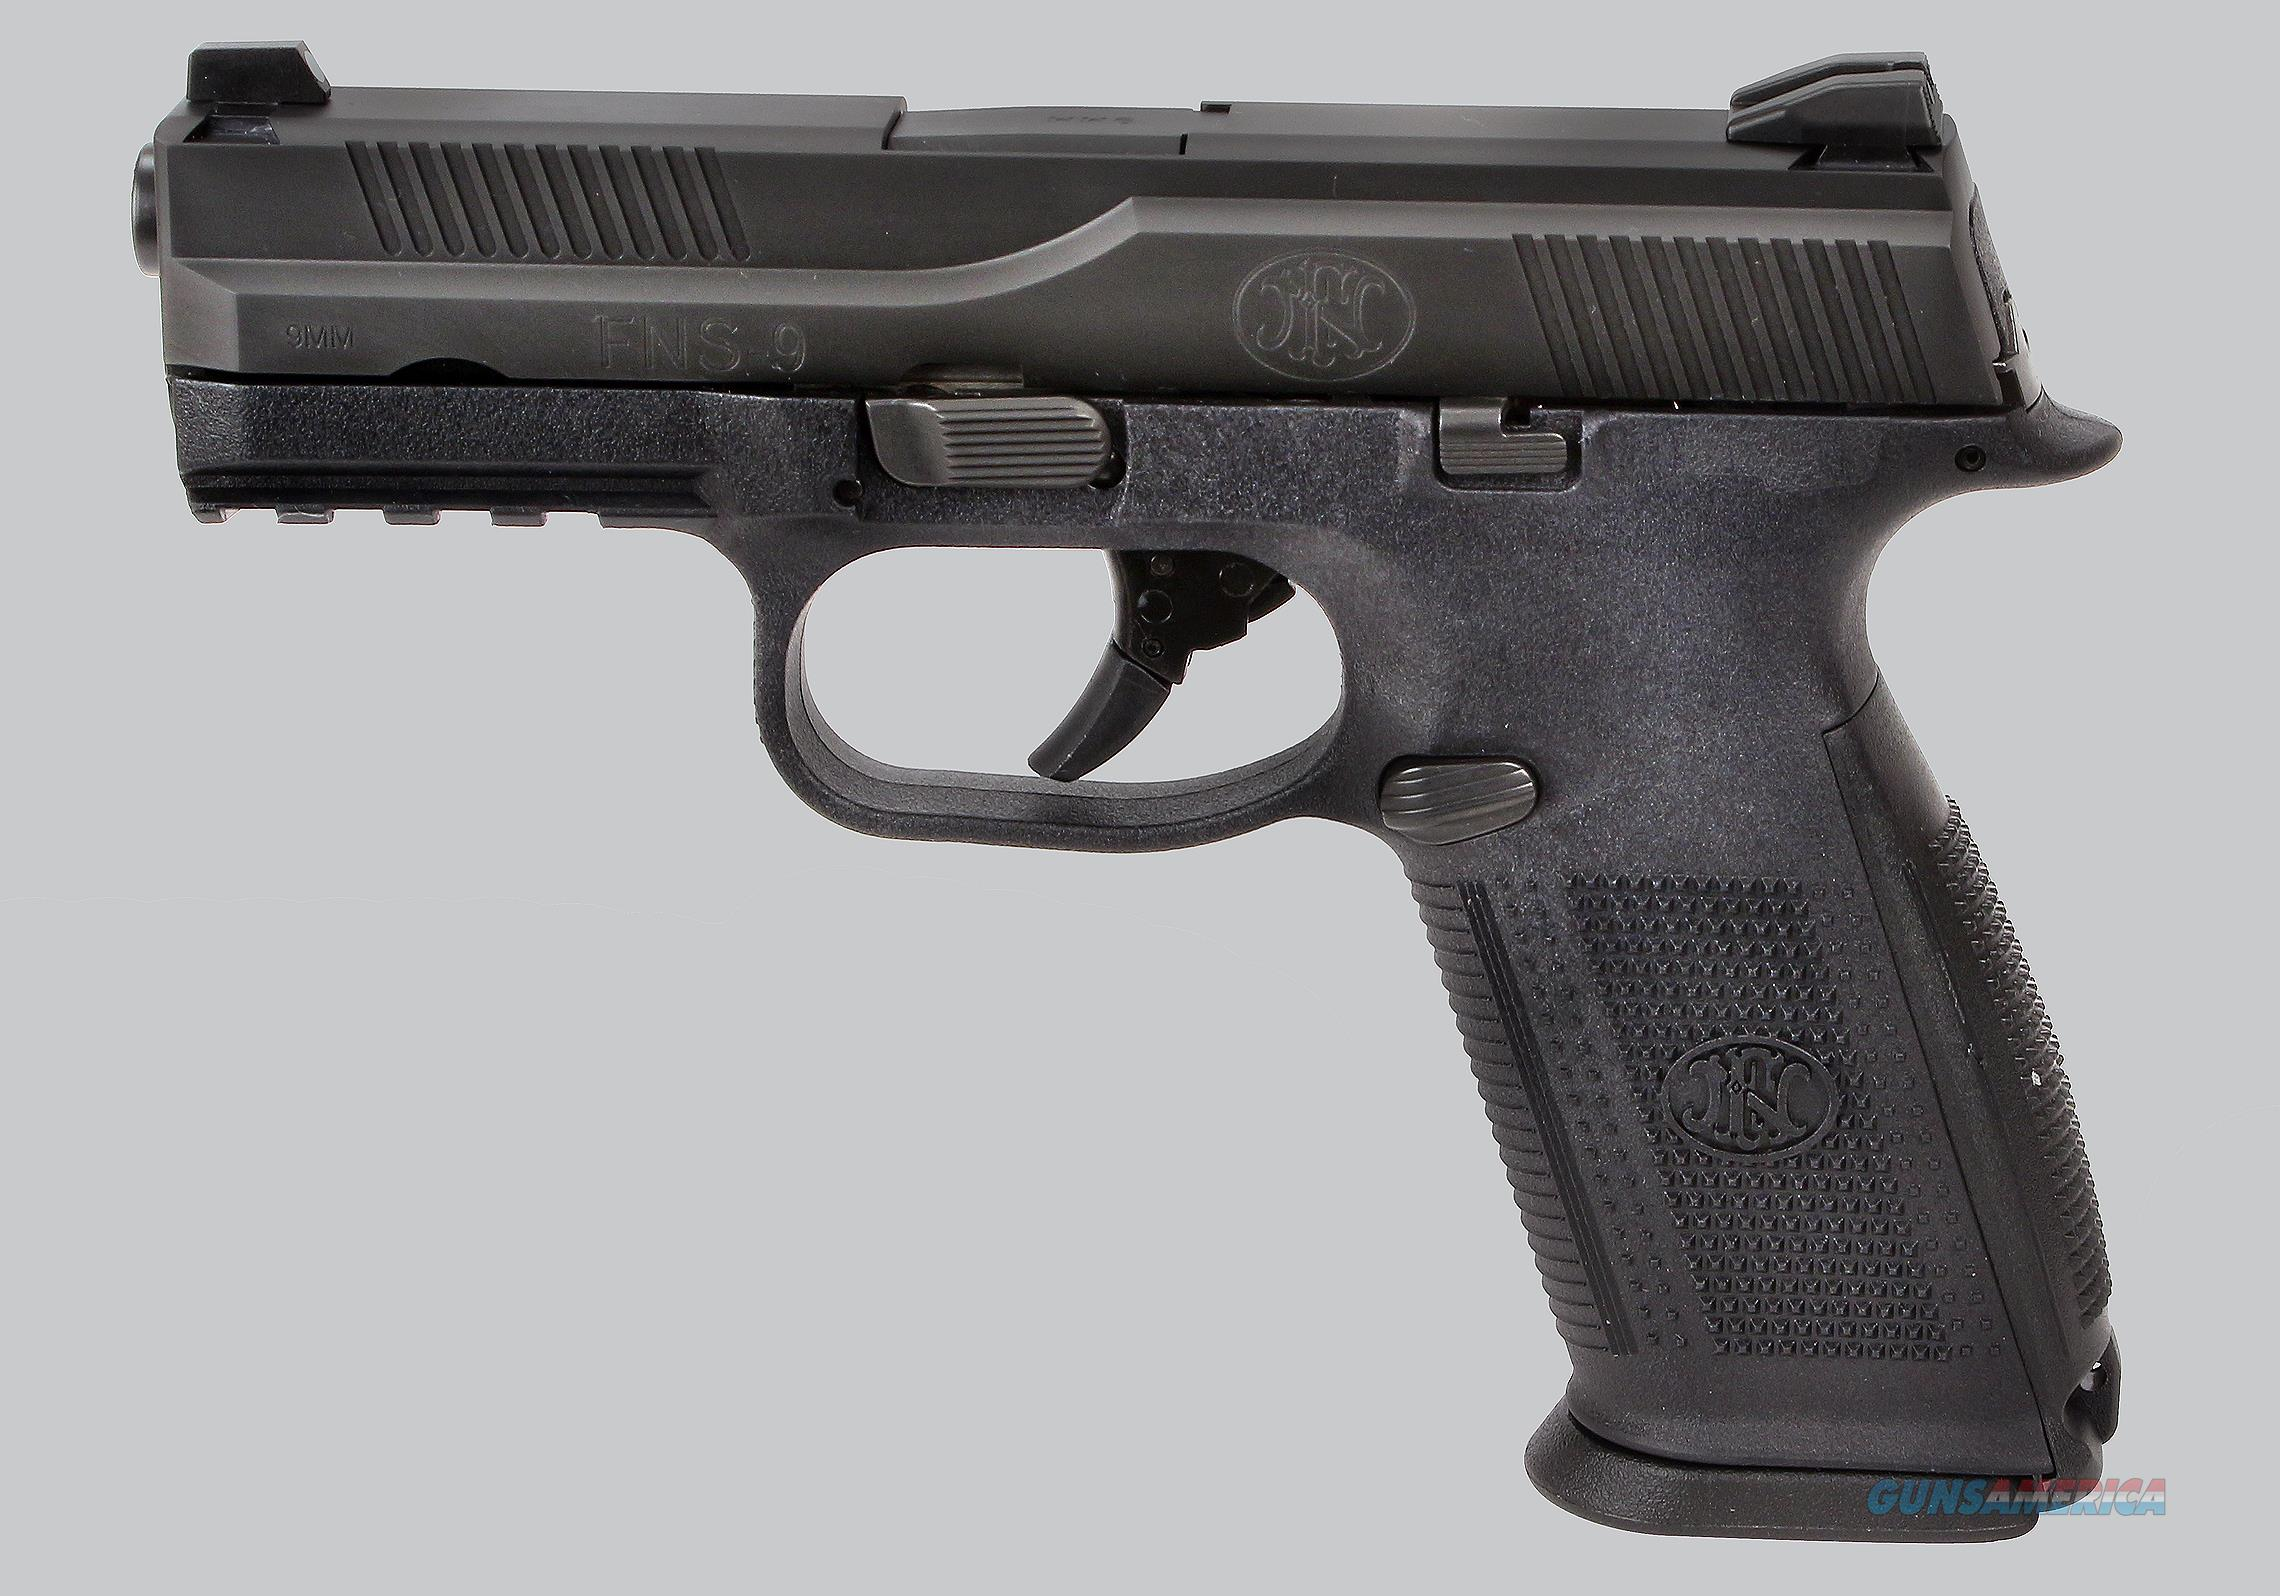 FN 9mm FNS9 Pistol  Guns > Pistols > FNH - Fabrique Nationale (FN) Pistols > FNS